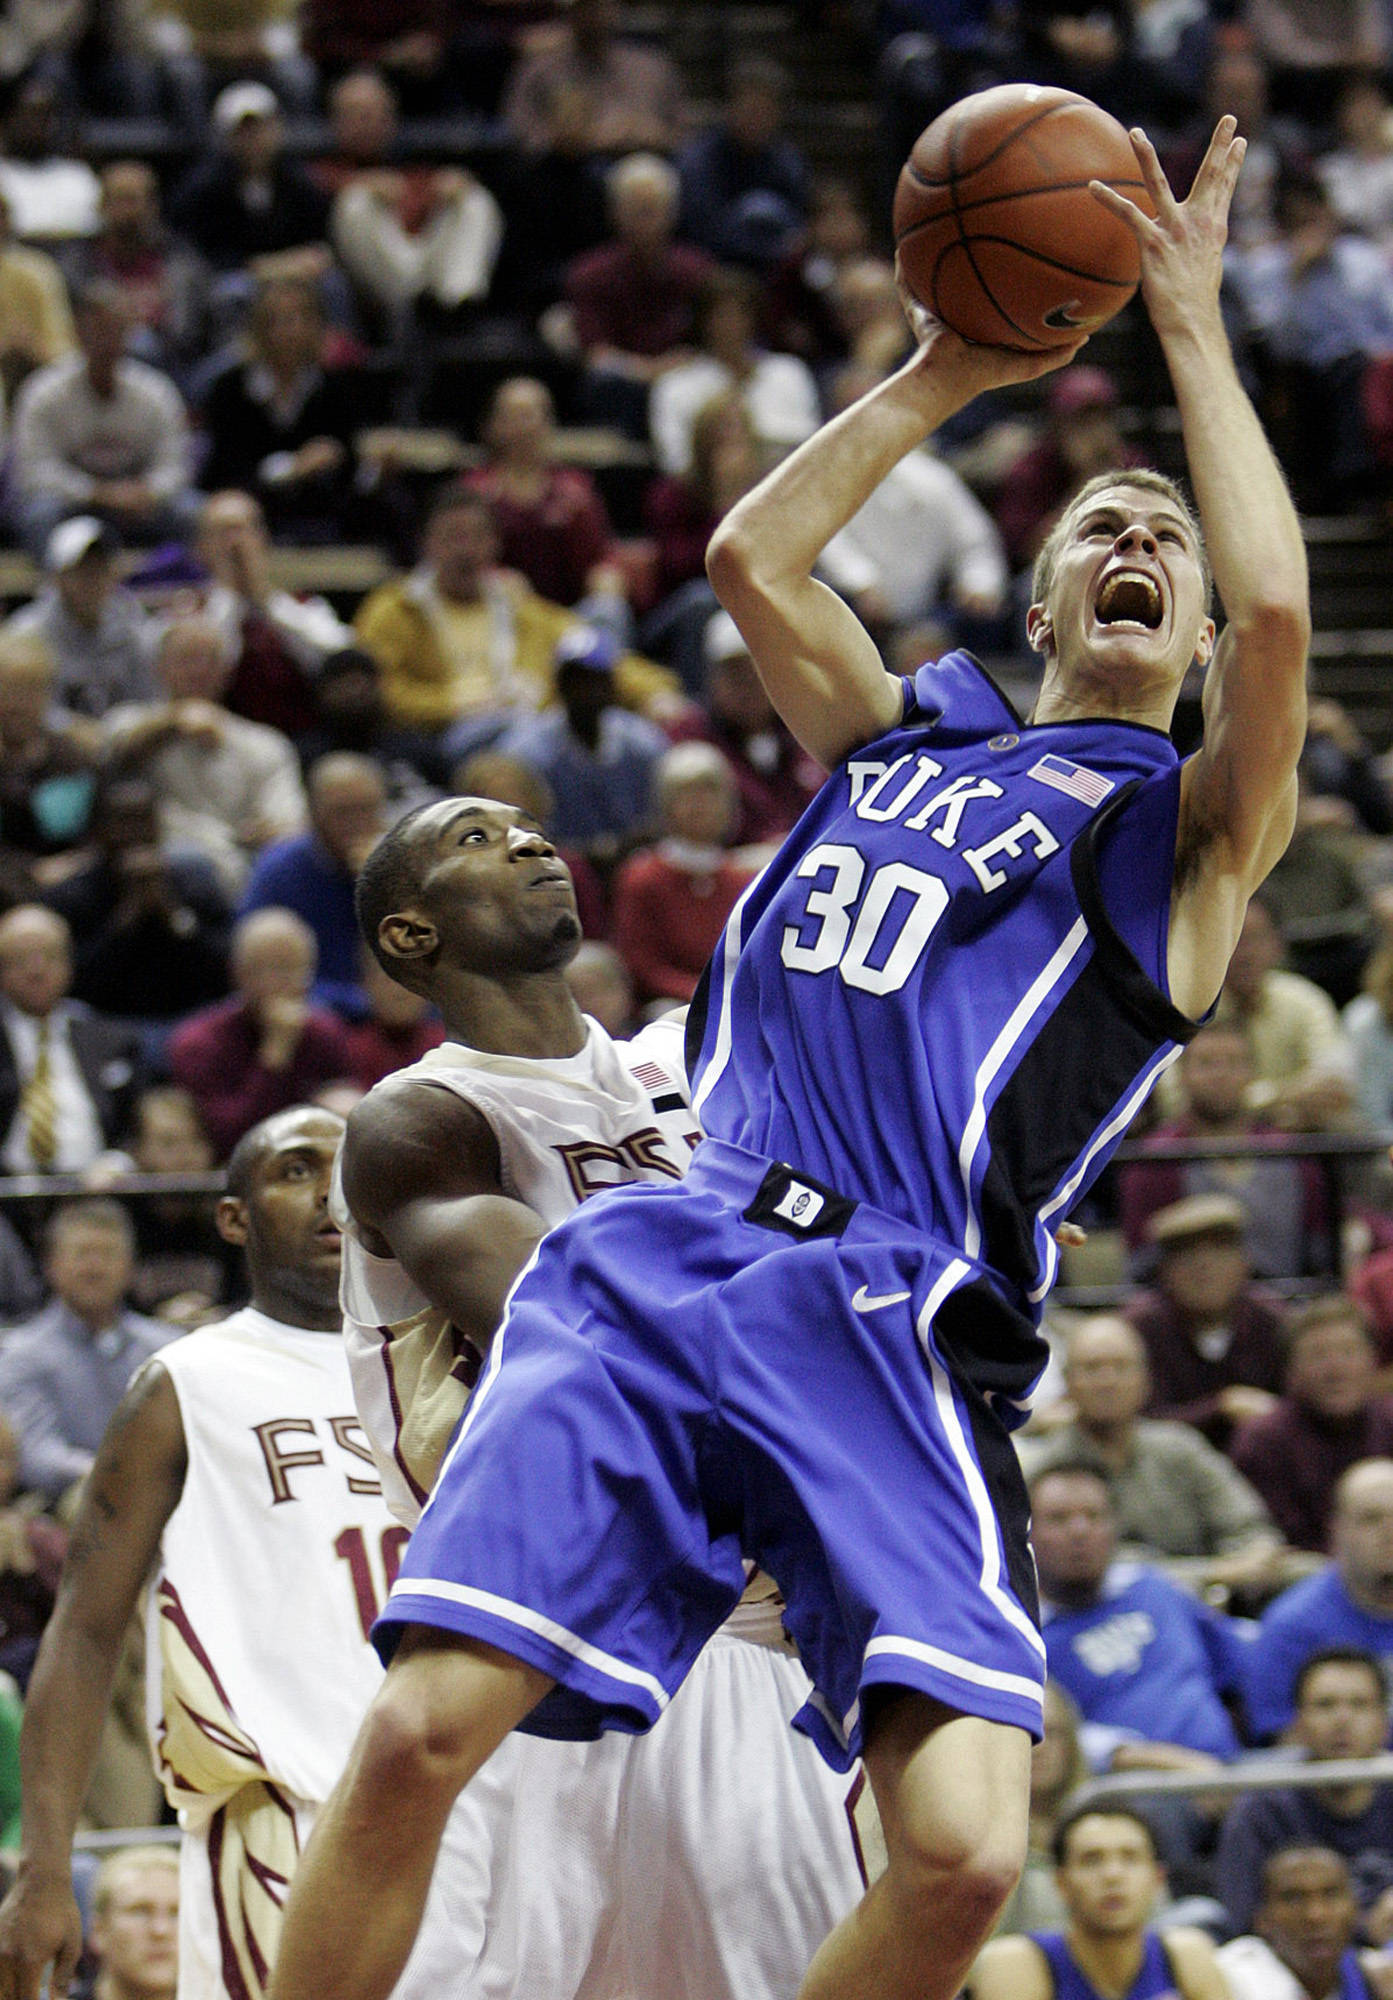 Duke's Jon Scheyer is fouled by Florida State's Uche Echefu as he scores and completed the three point play in the second half of a college basketball game, which Duke won 70-57 on Wednesday, Jan. 16, 2008 in Tallahassee, Fla.